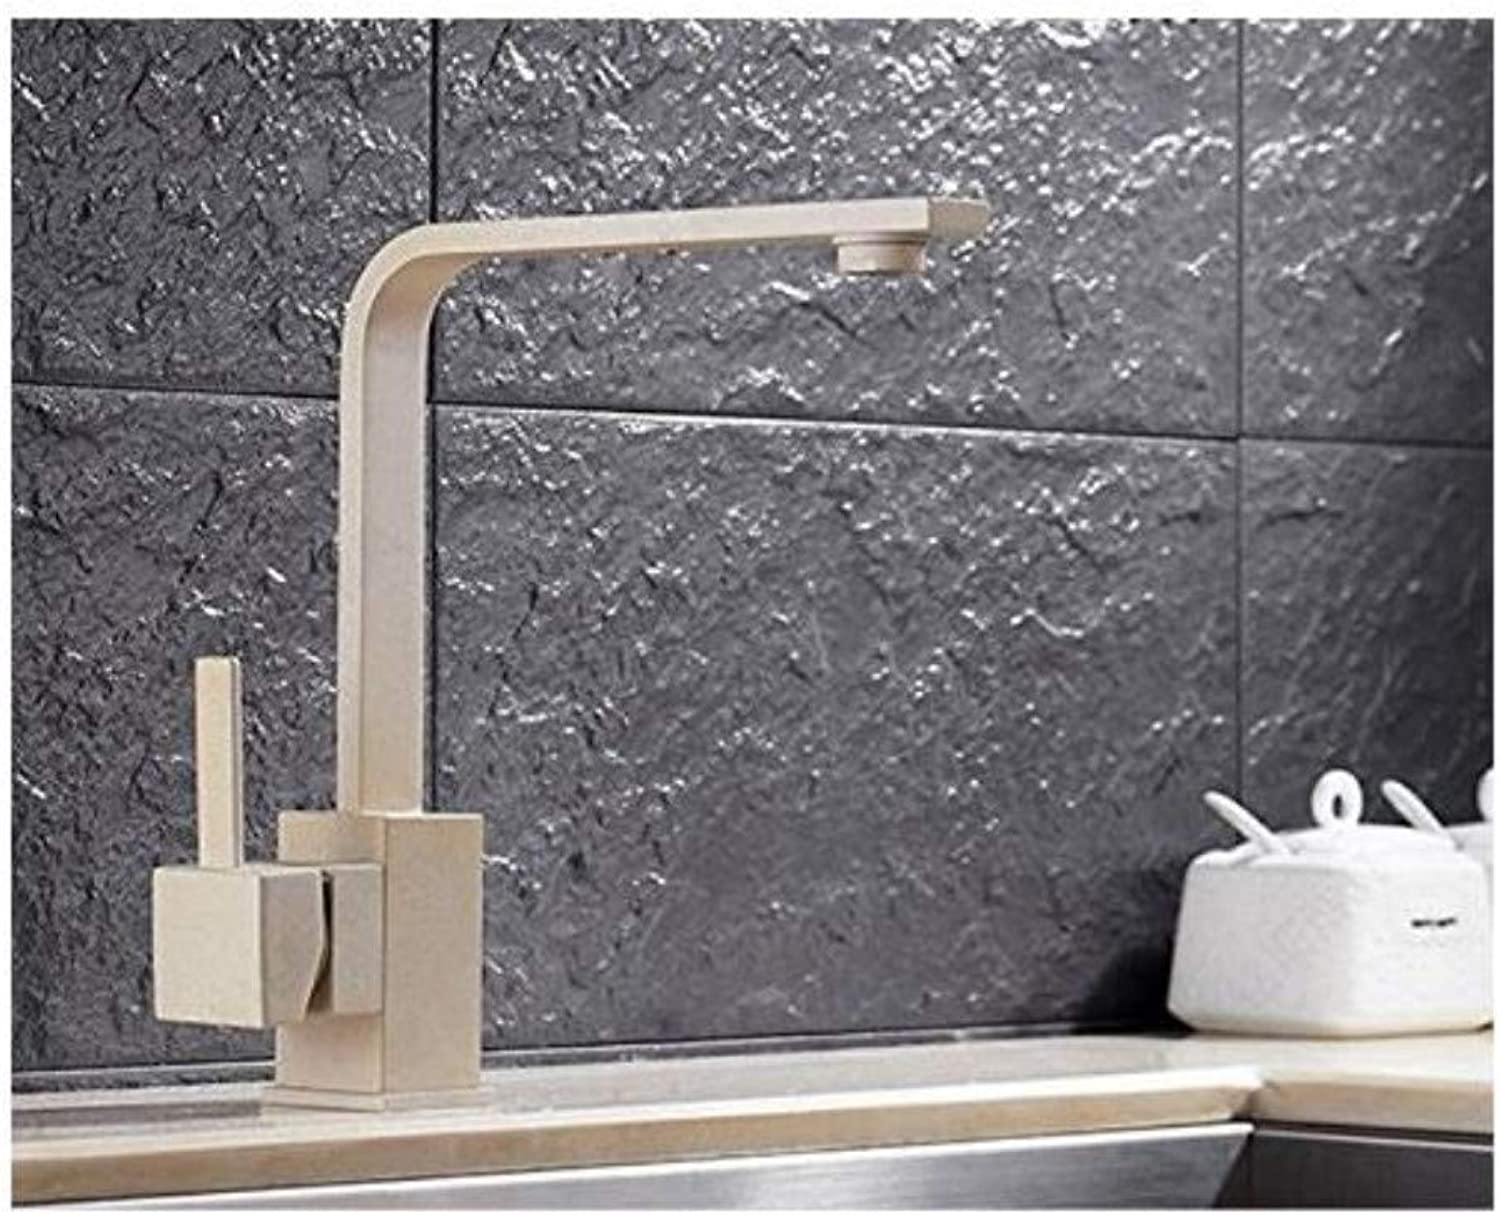 Faucet Kitchen Washing Basin Sanitary Ware with Single Handle Kitchen Sink Faucet of Brass Kitchen Mixer Tap Chrome Water Faucet